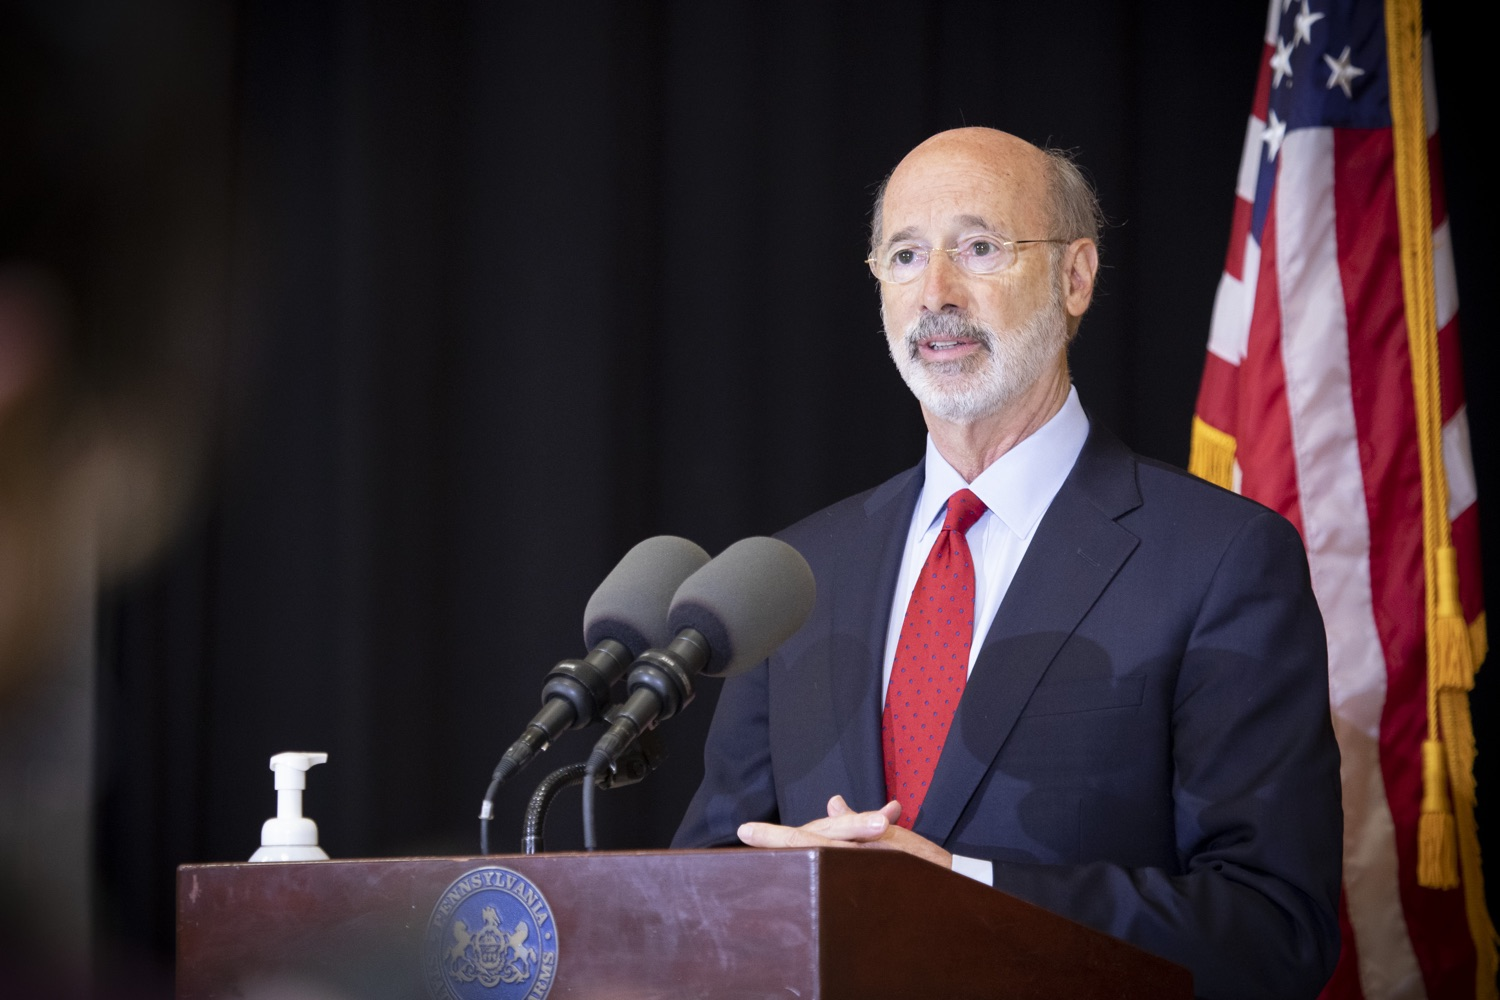 """<a href=""""https://filesource.wostreaming.net/commonwealthofpa/photo/18310_gov_adult_use_cannabis_dz_015.jpg"""" target=""""_blank"""">⇣Download Photo<br></a>Governor Tom Wolf speaks to the press.Governor Tom Wolf visited The Mountain Center in Tobyhanna, Monroe County today to talk about the economic growth potential and restorative justice benefits of legalizing adult-use cannabis, something the state General Assembly has not yet done despite multiple requests from the governor and Lieutenant Governor John Fetterman to take up legislation this fall.  Tobyhanna, PA  October 13, 2020"""